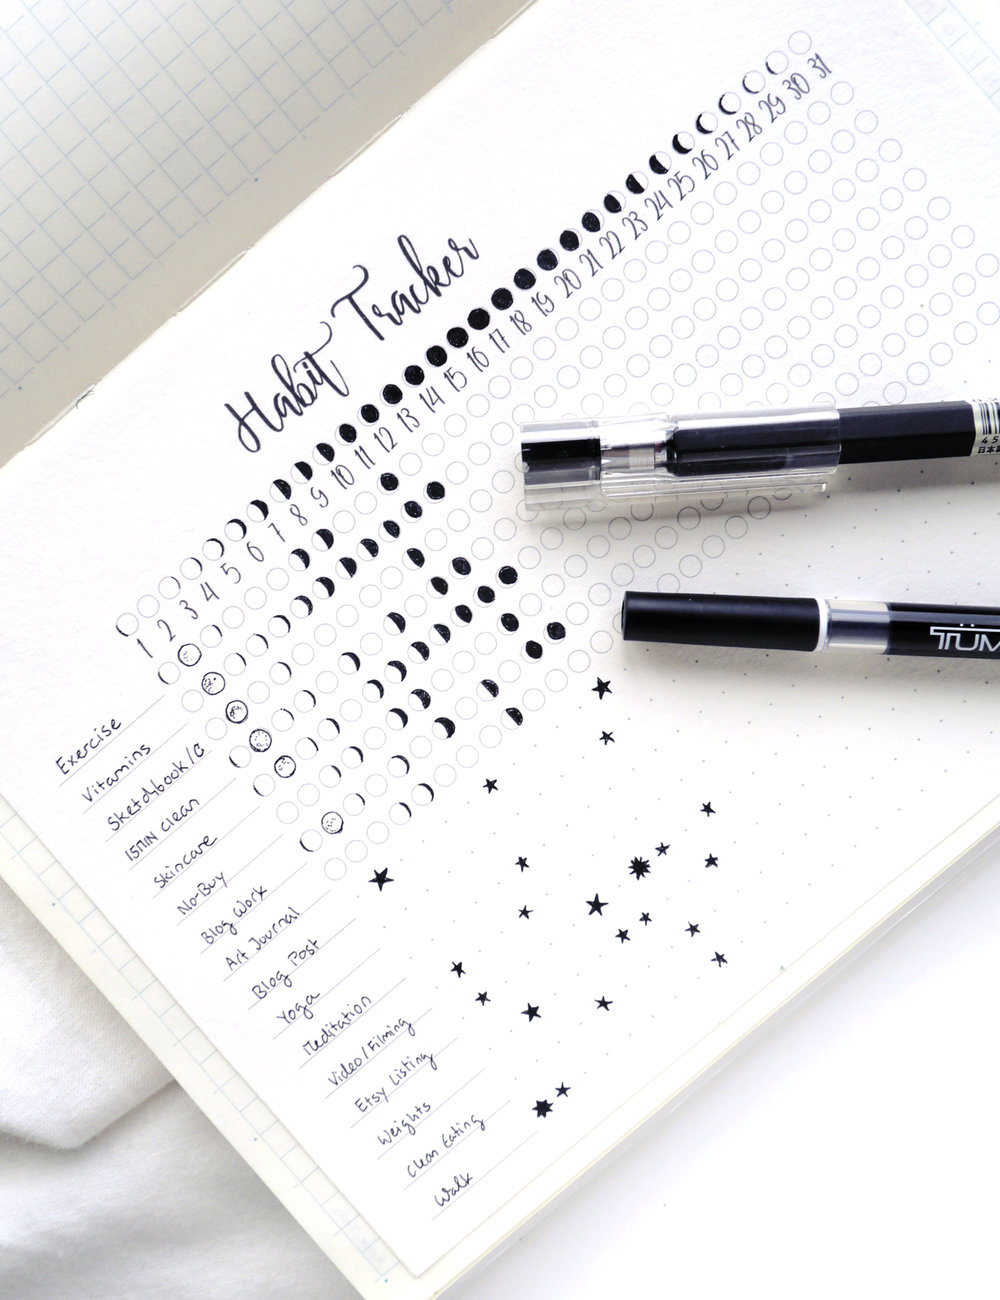 My Moon Phases & Stars Habit Tracker printable put to use! I keep track of little personal, health, creativity, and mindfulness related habits with this dual tracking system in my bullet journal.